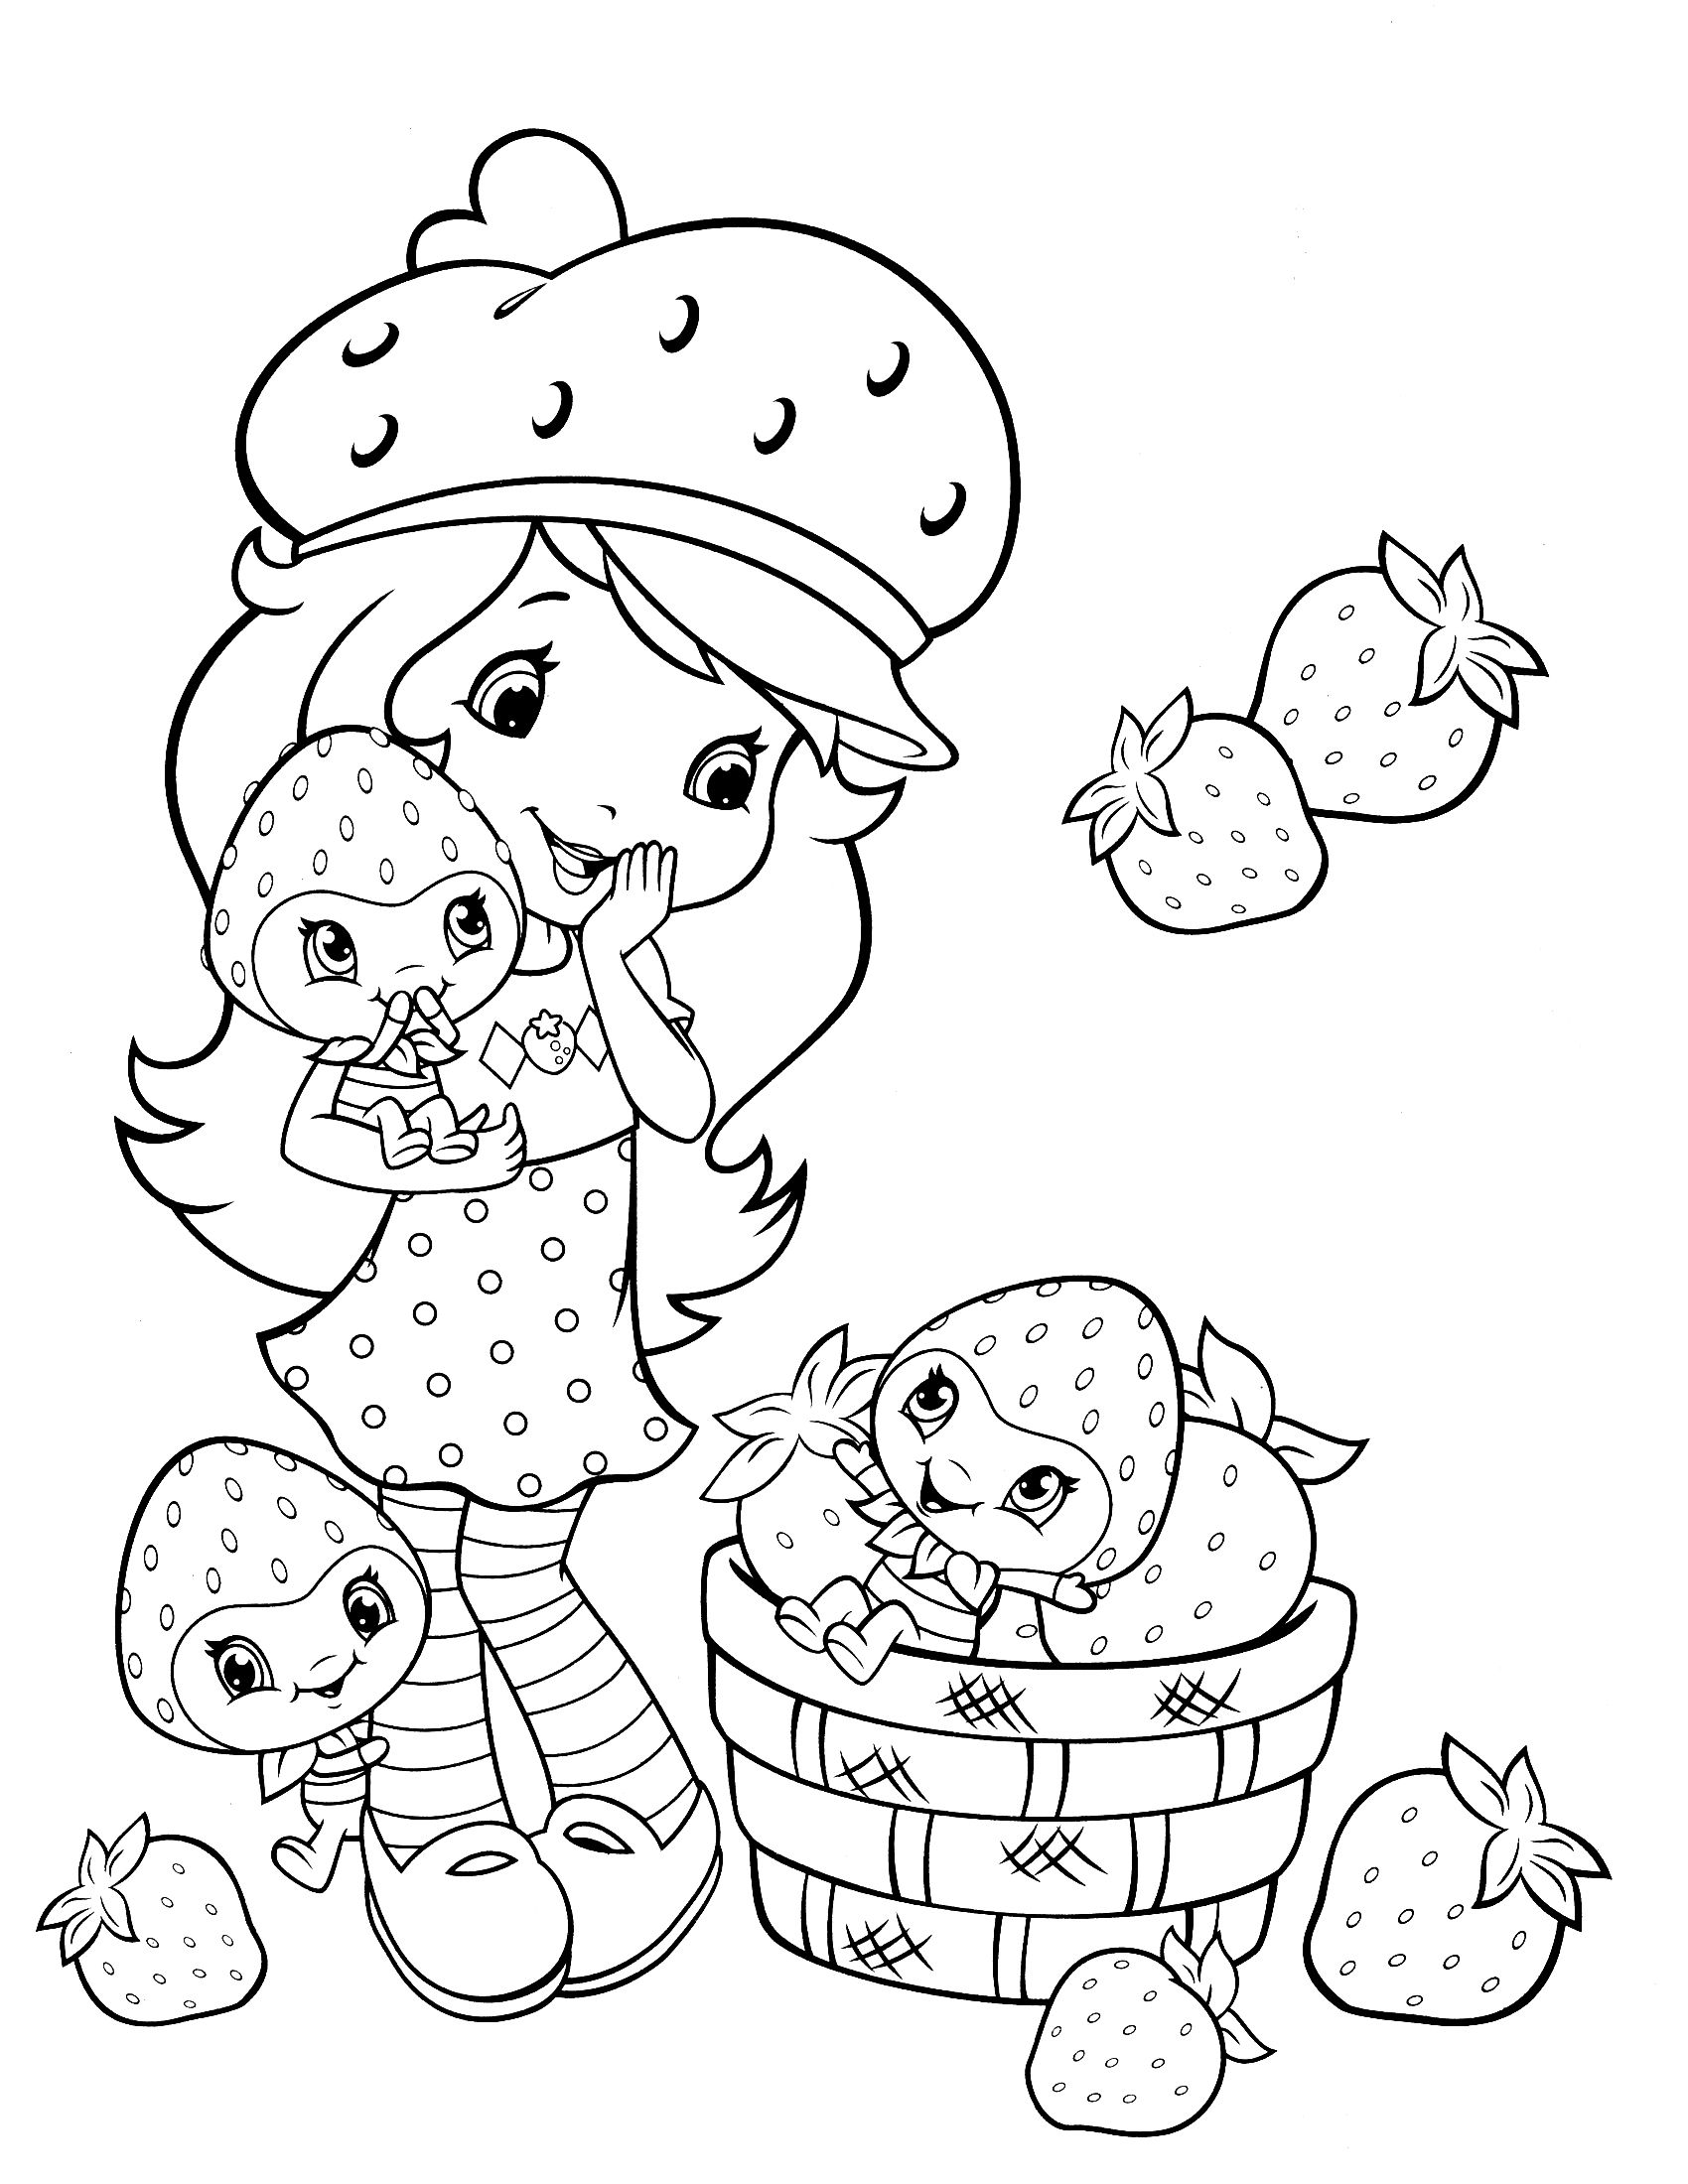 strawberry shortcake coloring page | fresitas | Pinterest | Adult ...